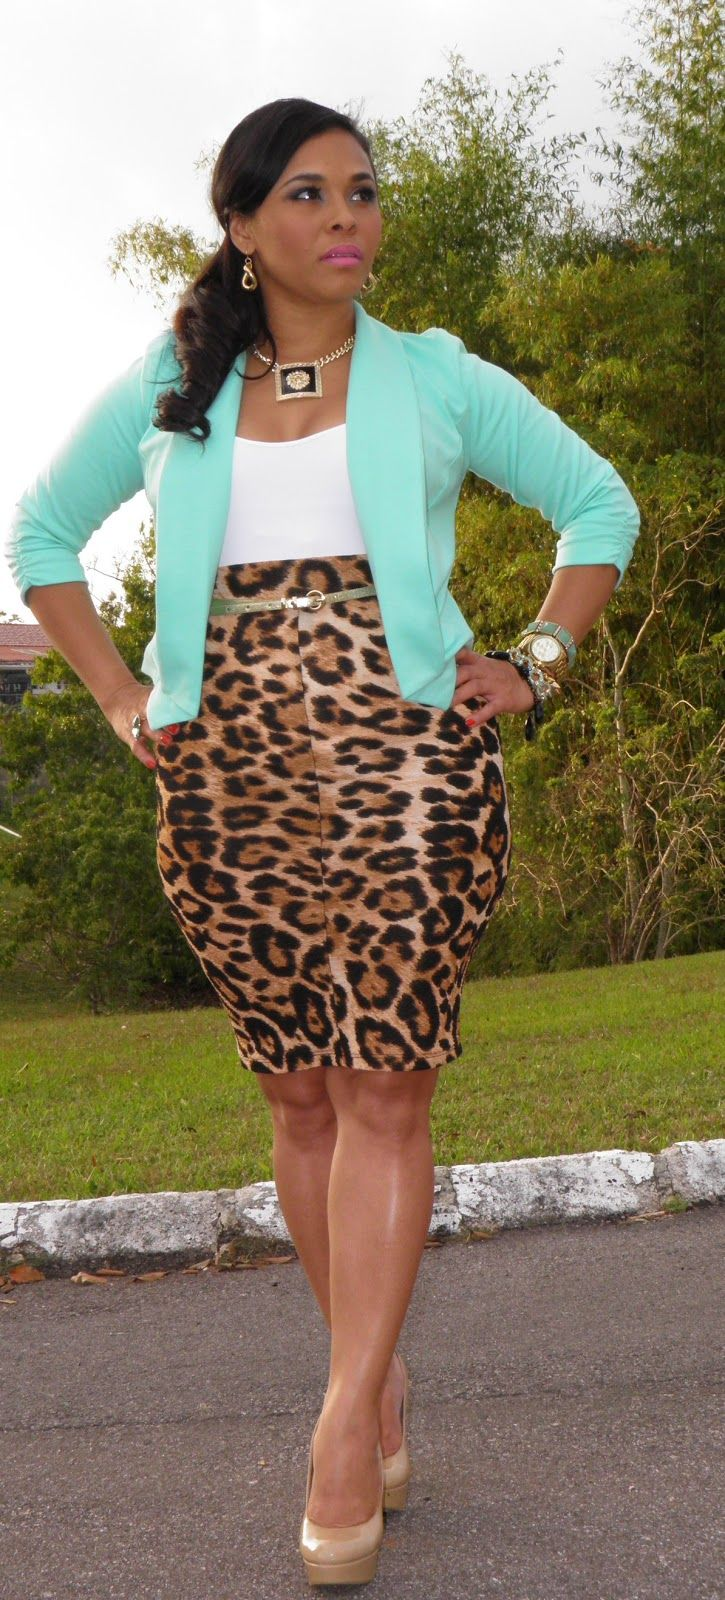 Leopard Meets Mint - love the leopard with the mint but not so much the outfit - yuck! I would reverse the look and do mint green skinny jeans with a leopard top.